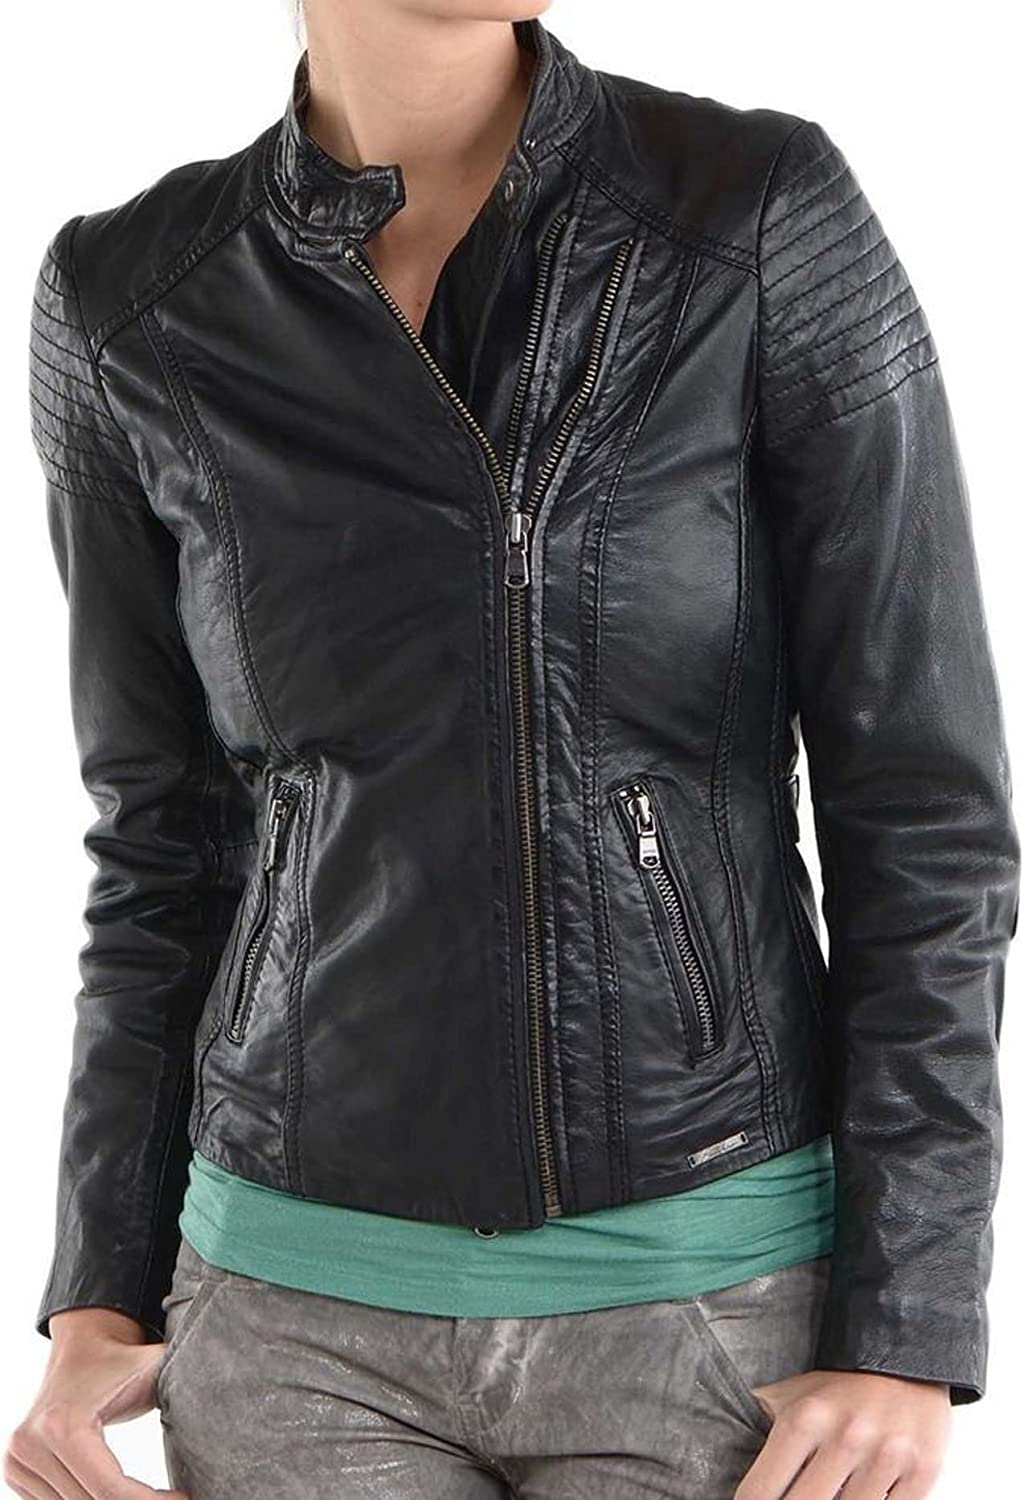 Kingdom Leather New Women Motorcycle Lambskin Leather Jacket Coat Size XS S M L XL XW564